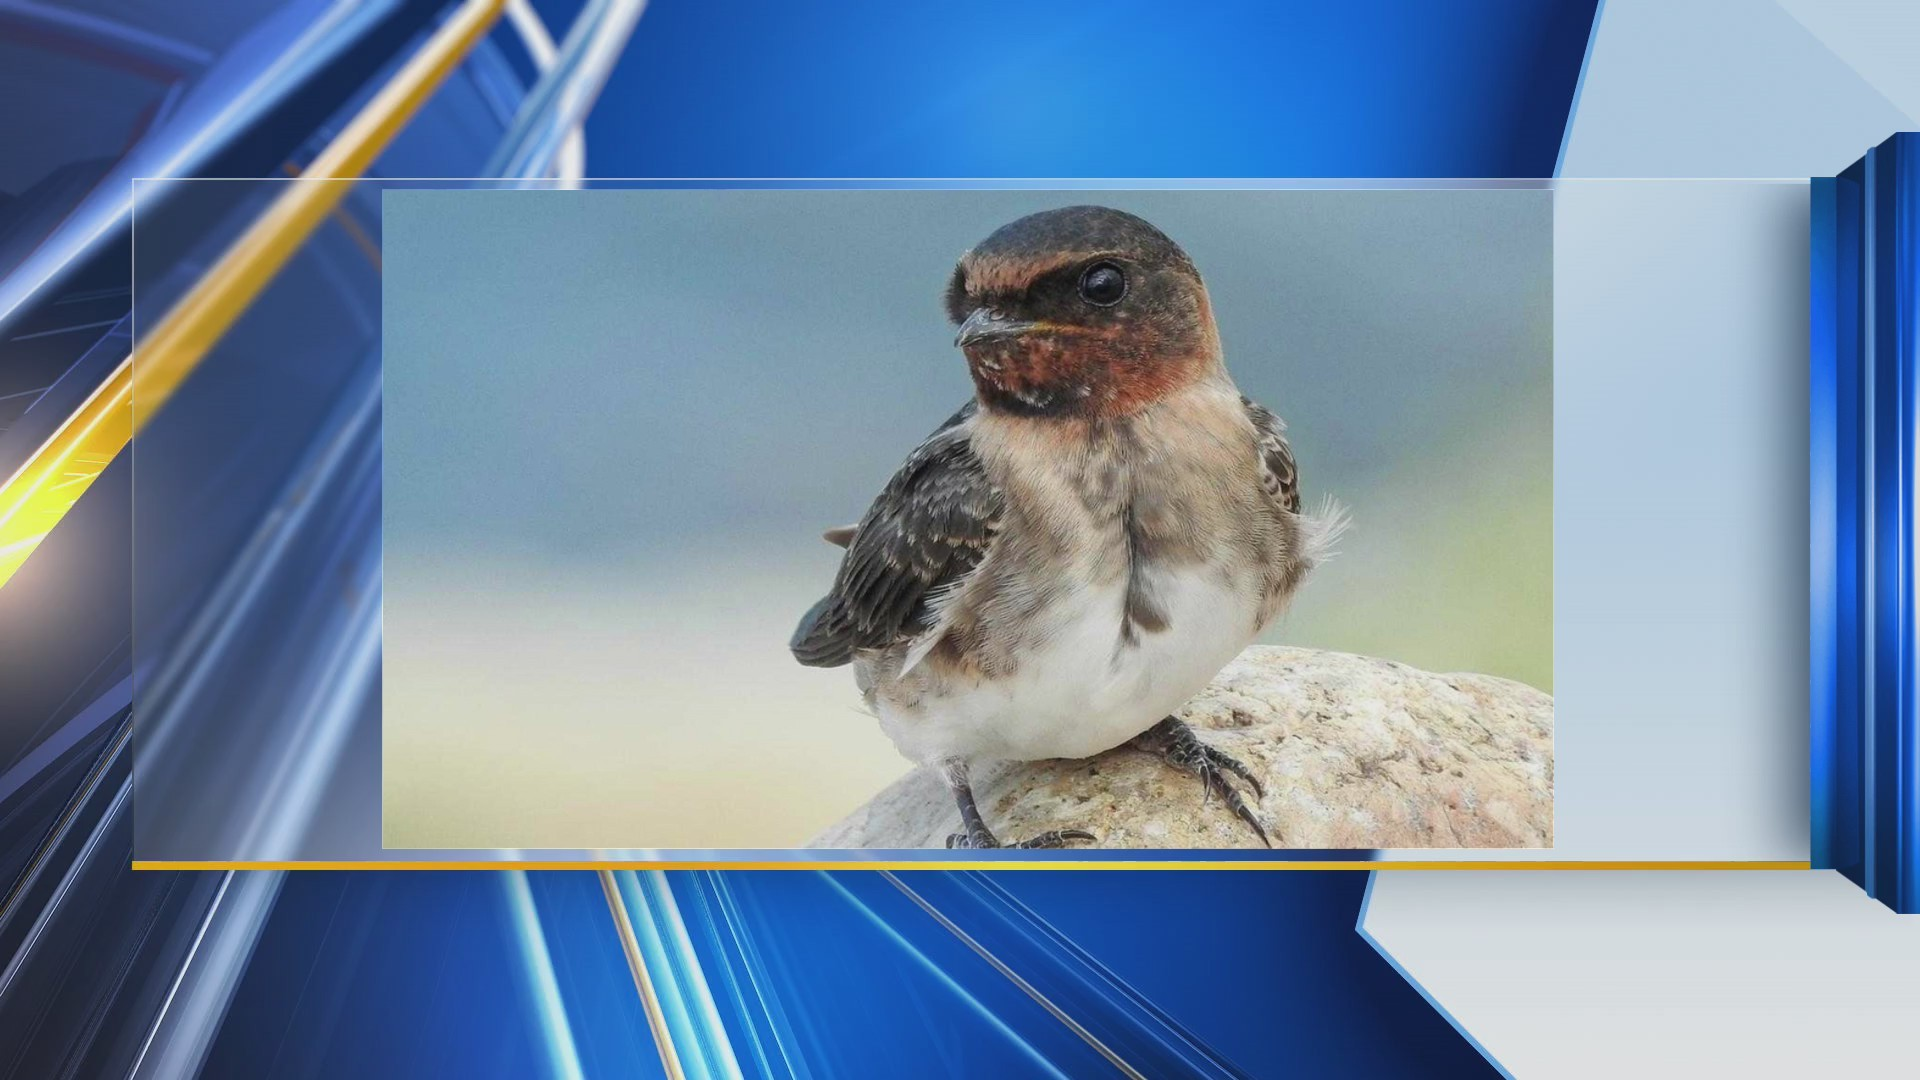 Watchable_Wildlife__Cliff_Swallows_0_20190617173414-118809306